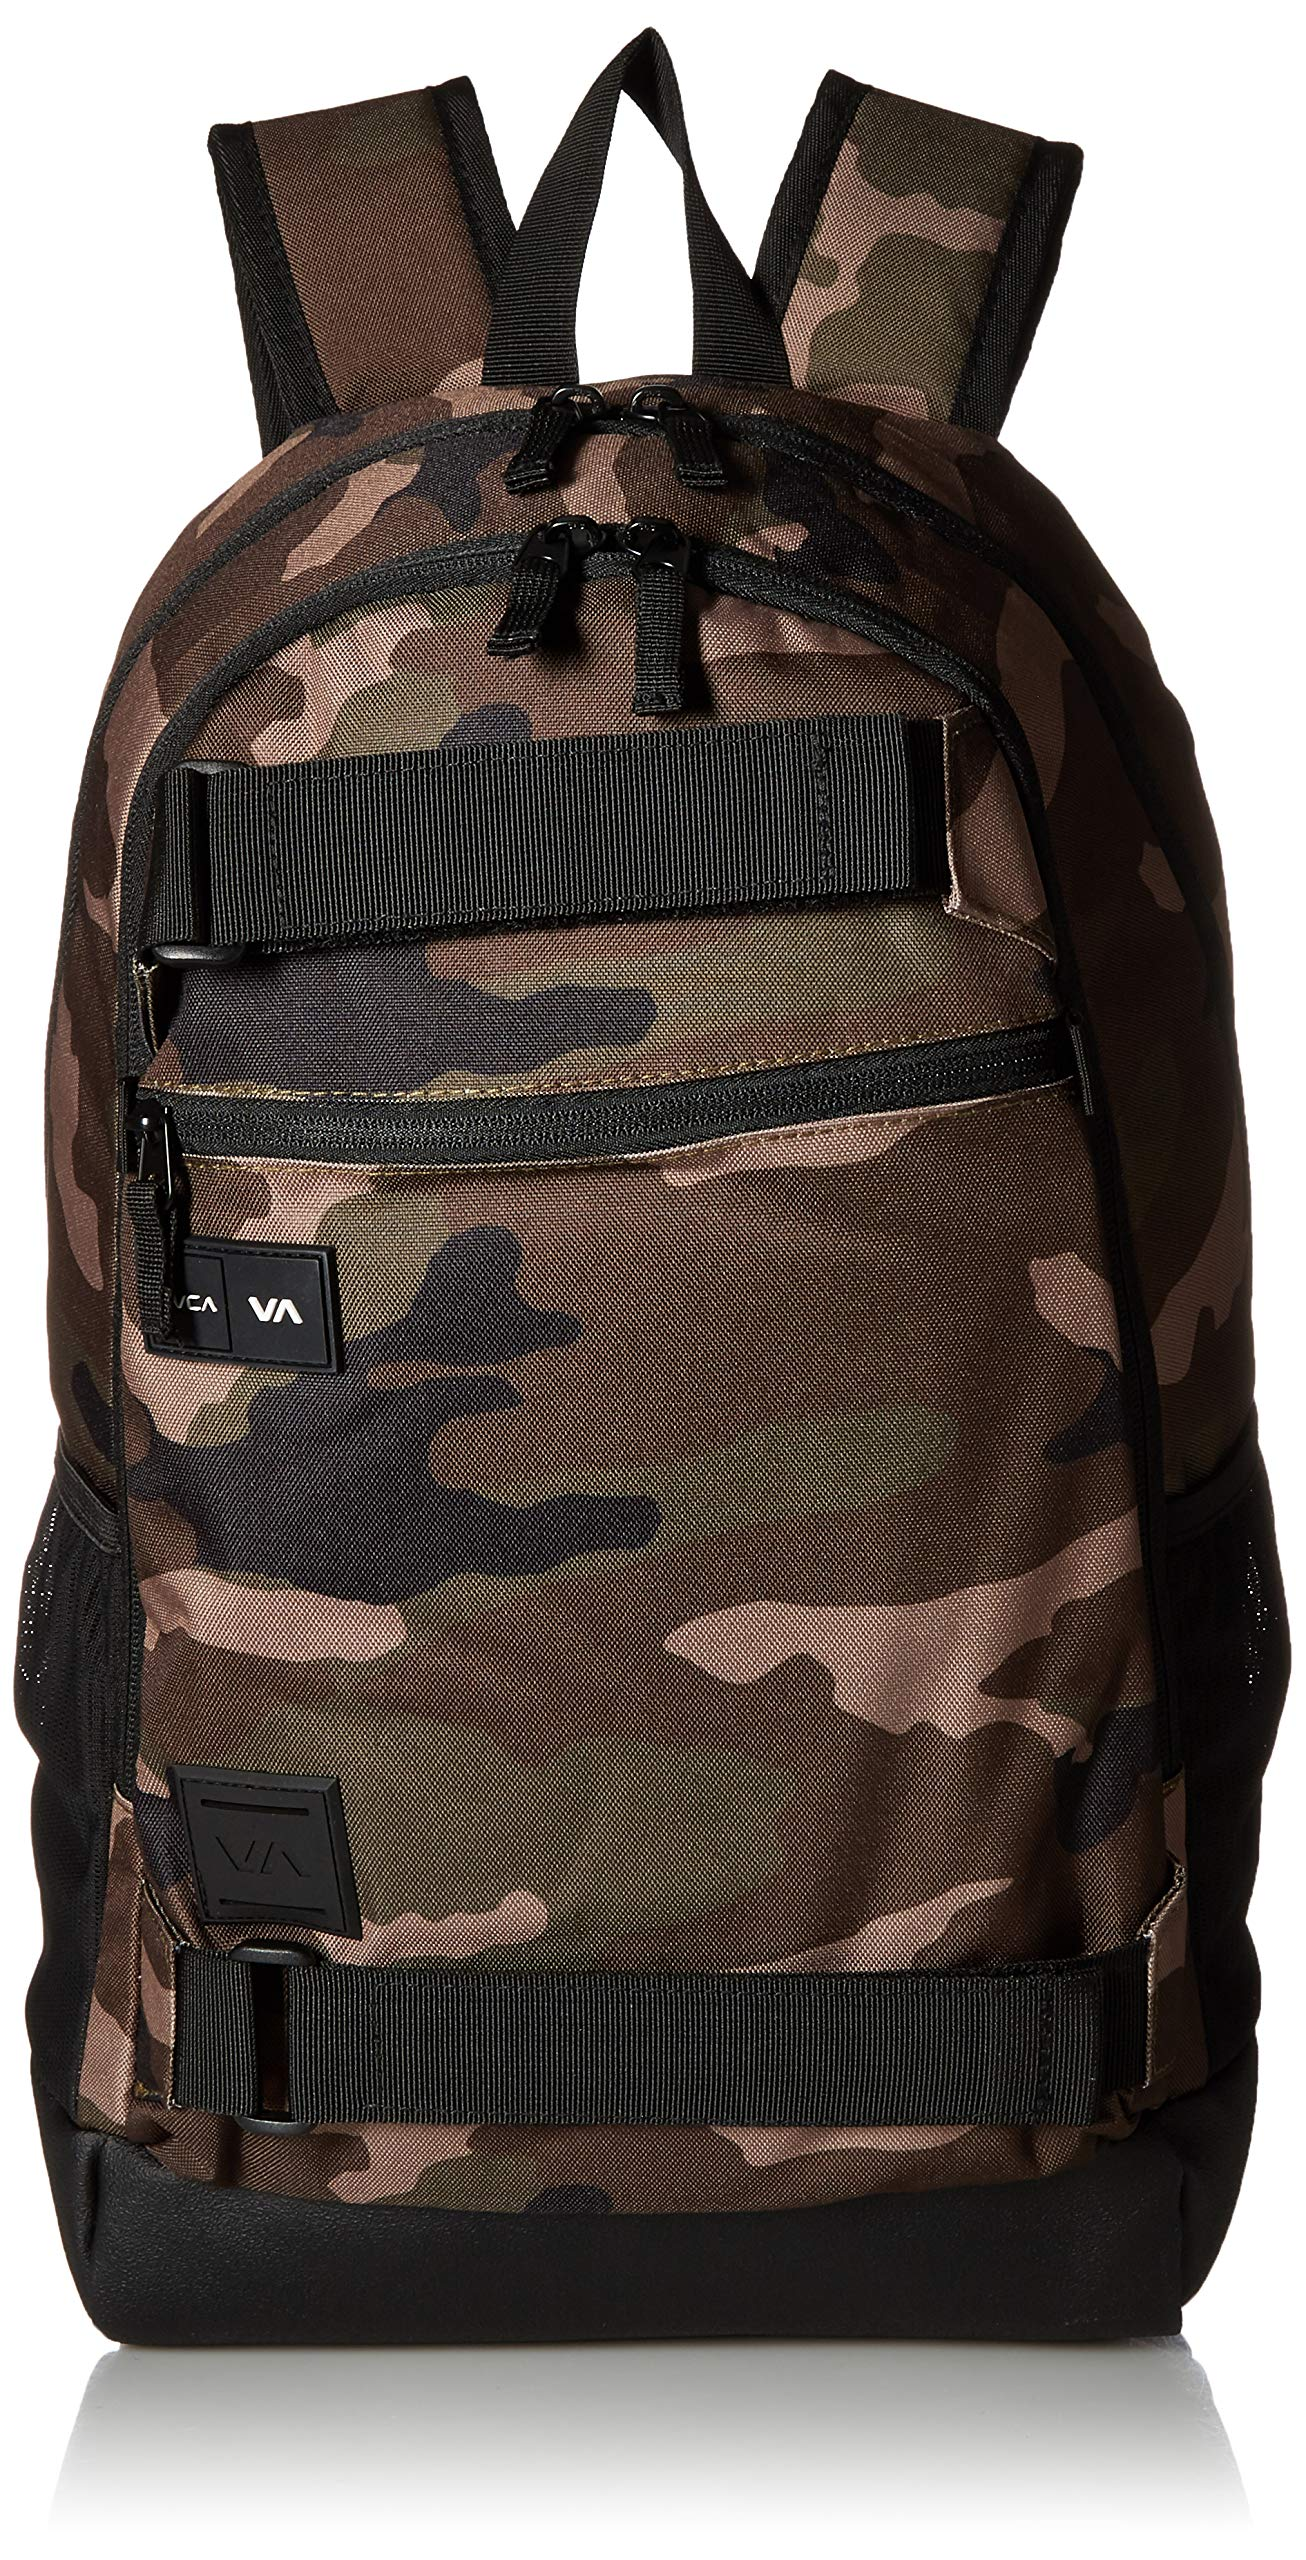 RVCA Men's Curb Skate Backpack, camo, ONE SIZE